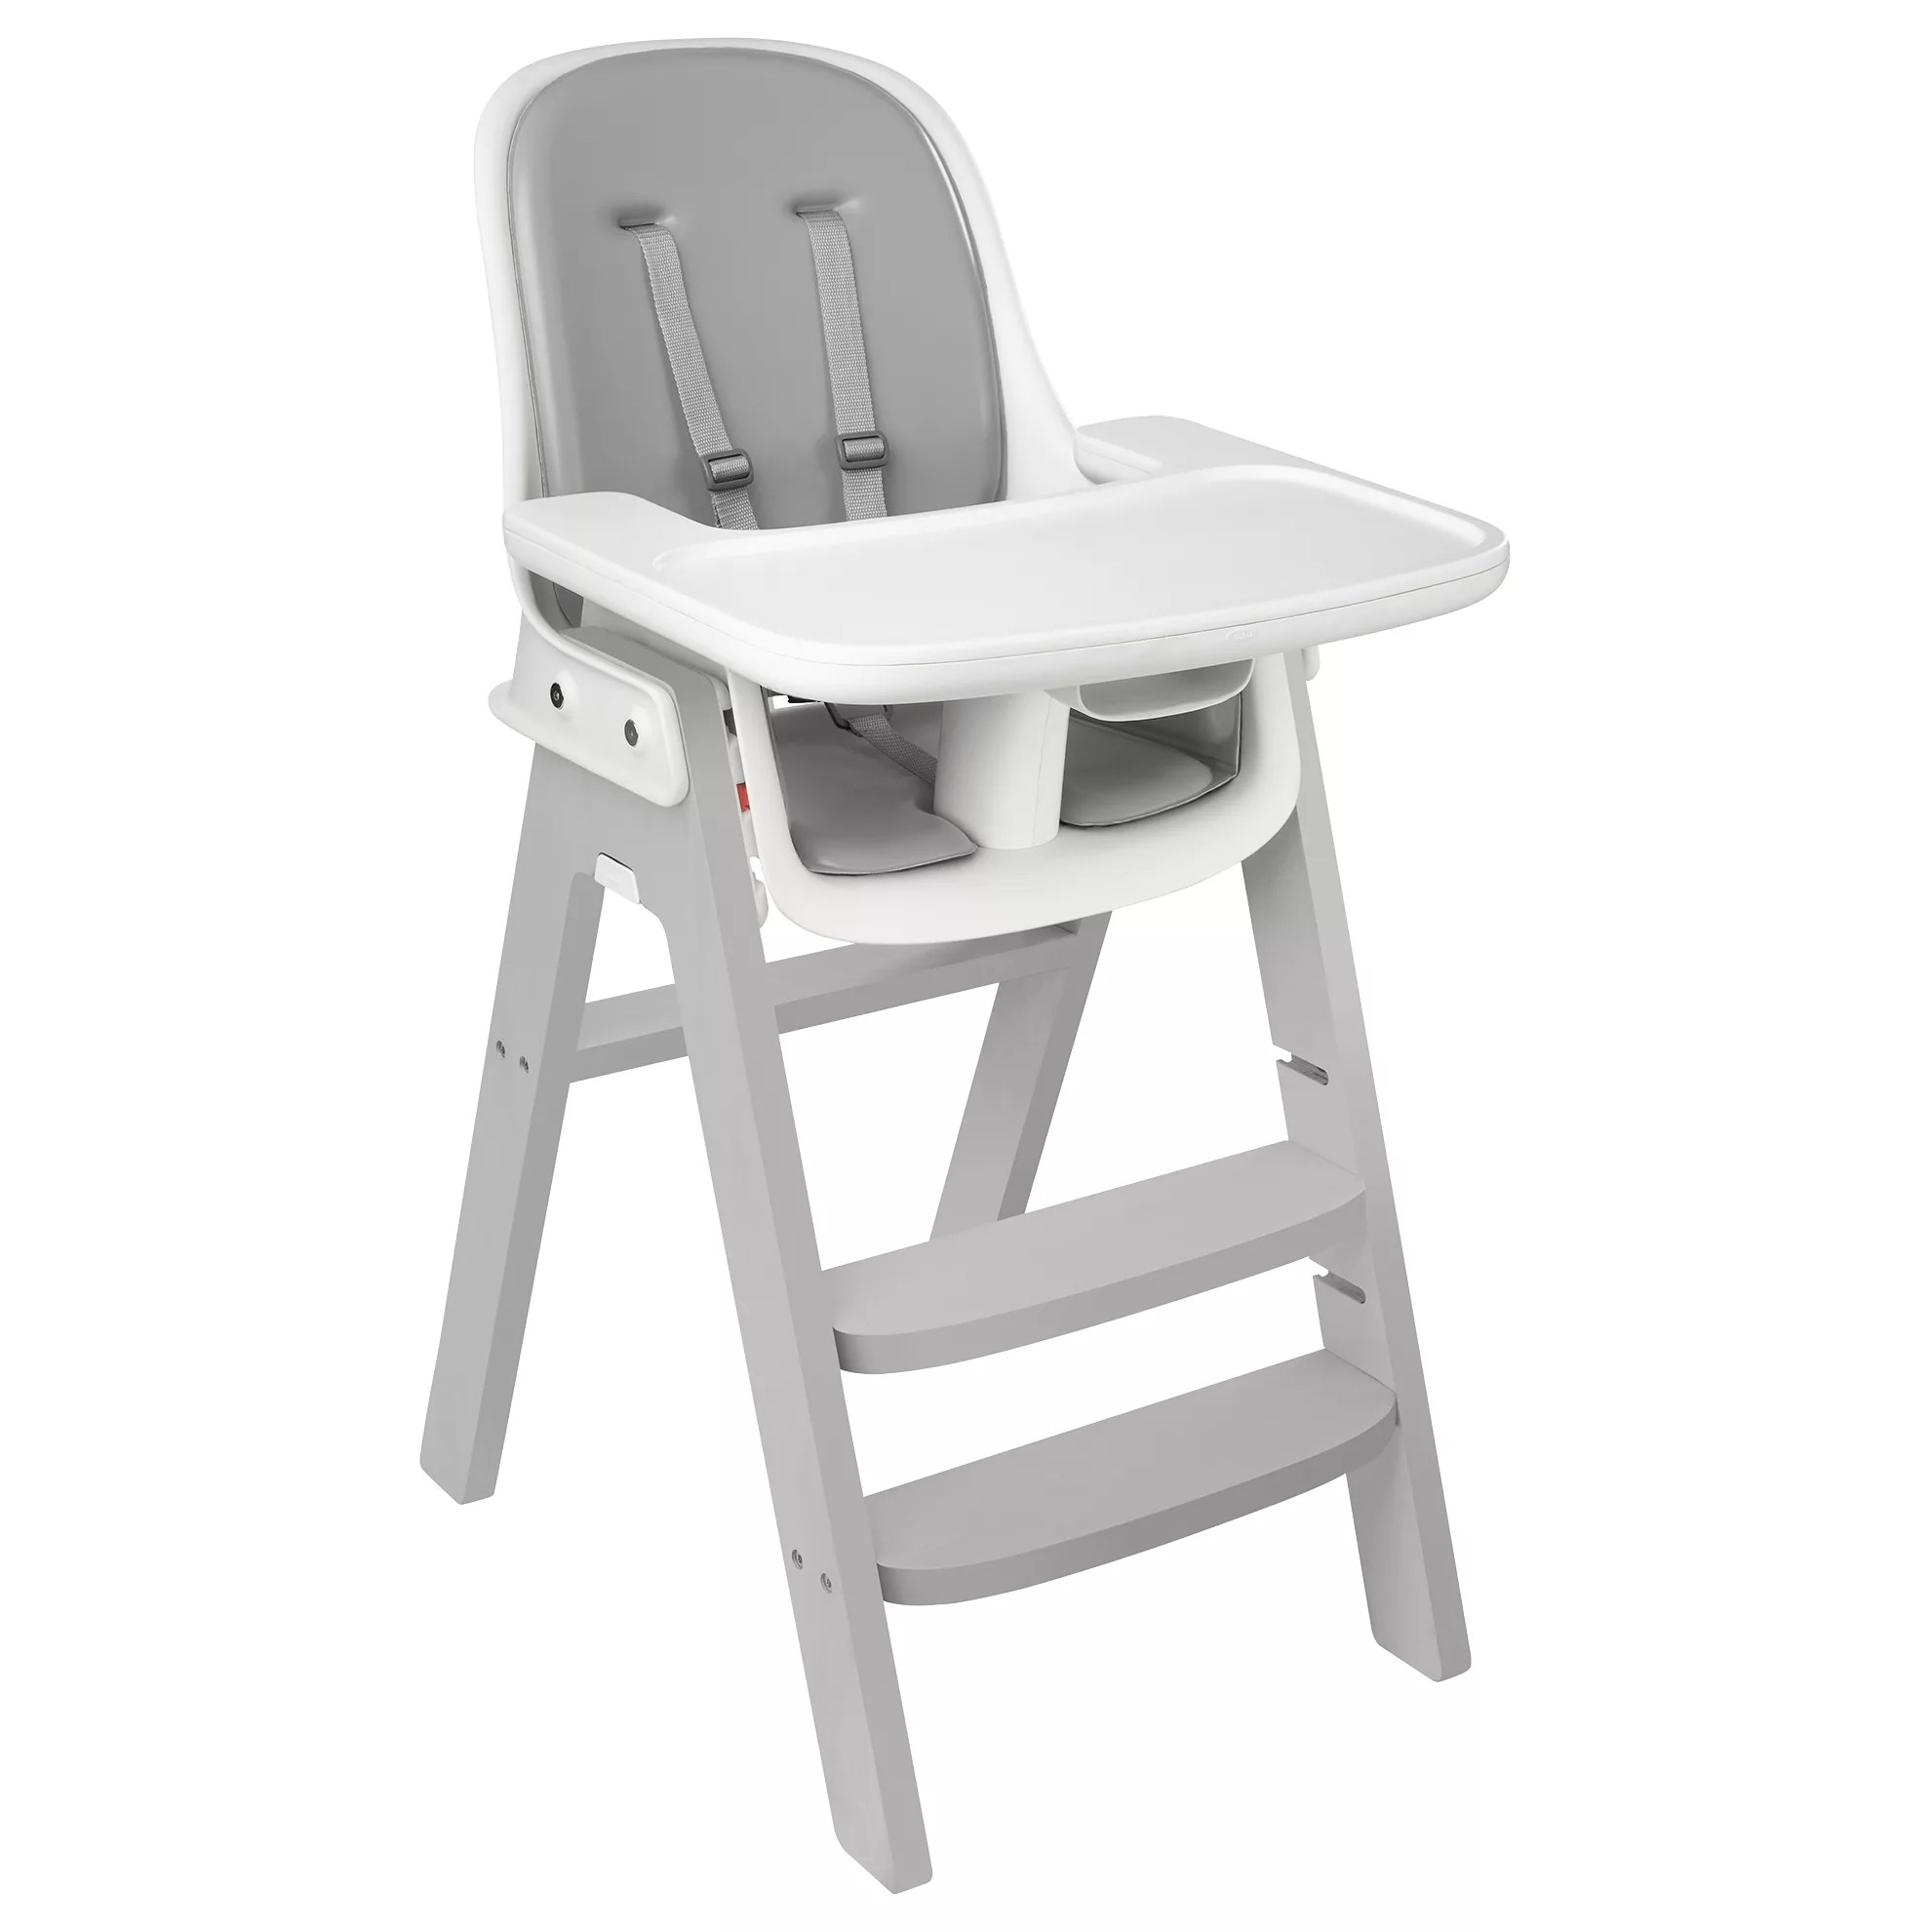 oxo high chair table for kids tot sprout highchair at john lewis partners buyoxo grey white online johnlewis com